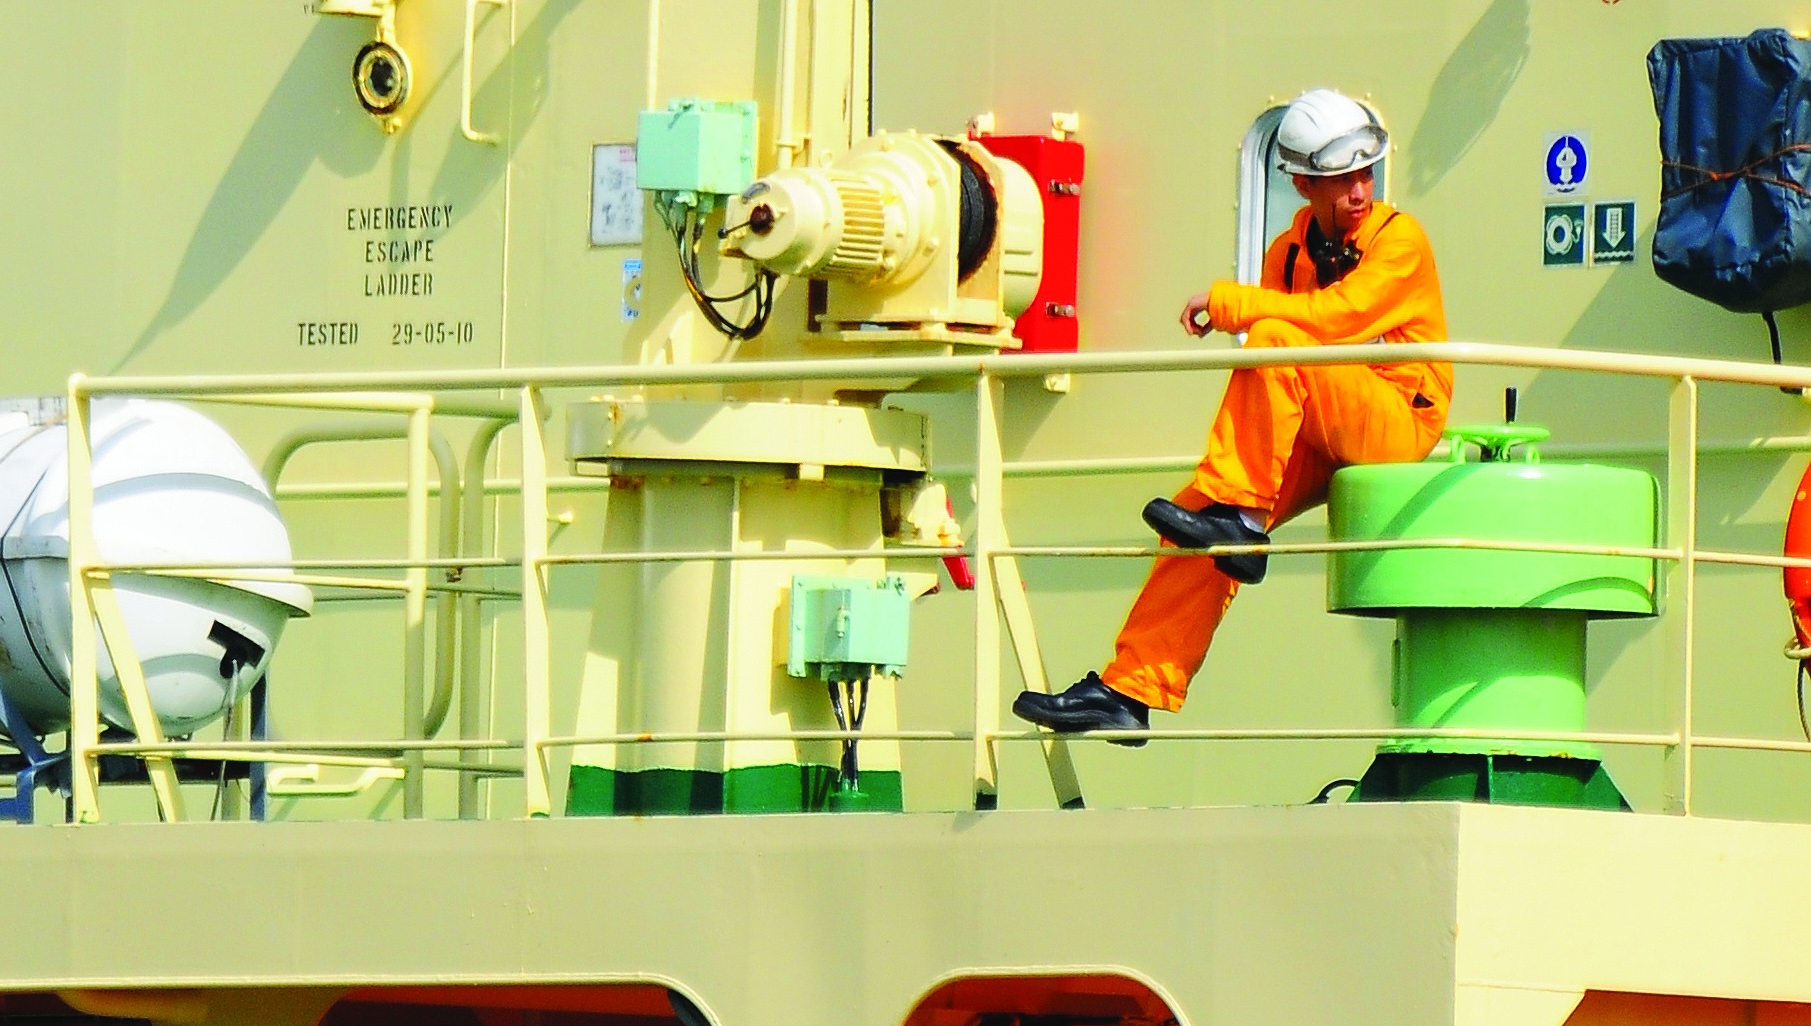 New MLC amendments on seafarer welfare and safety enter into force